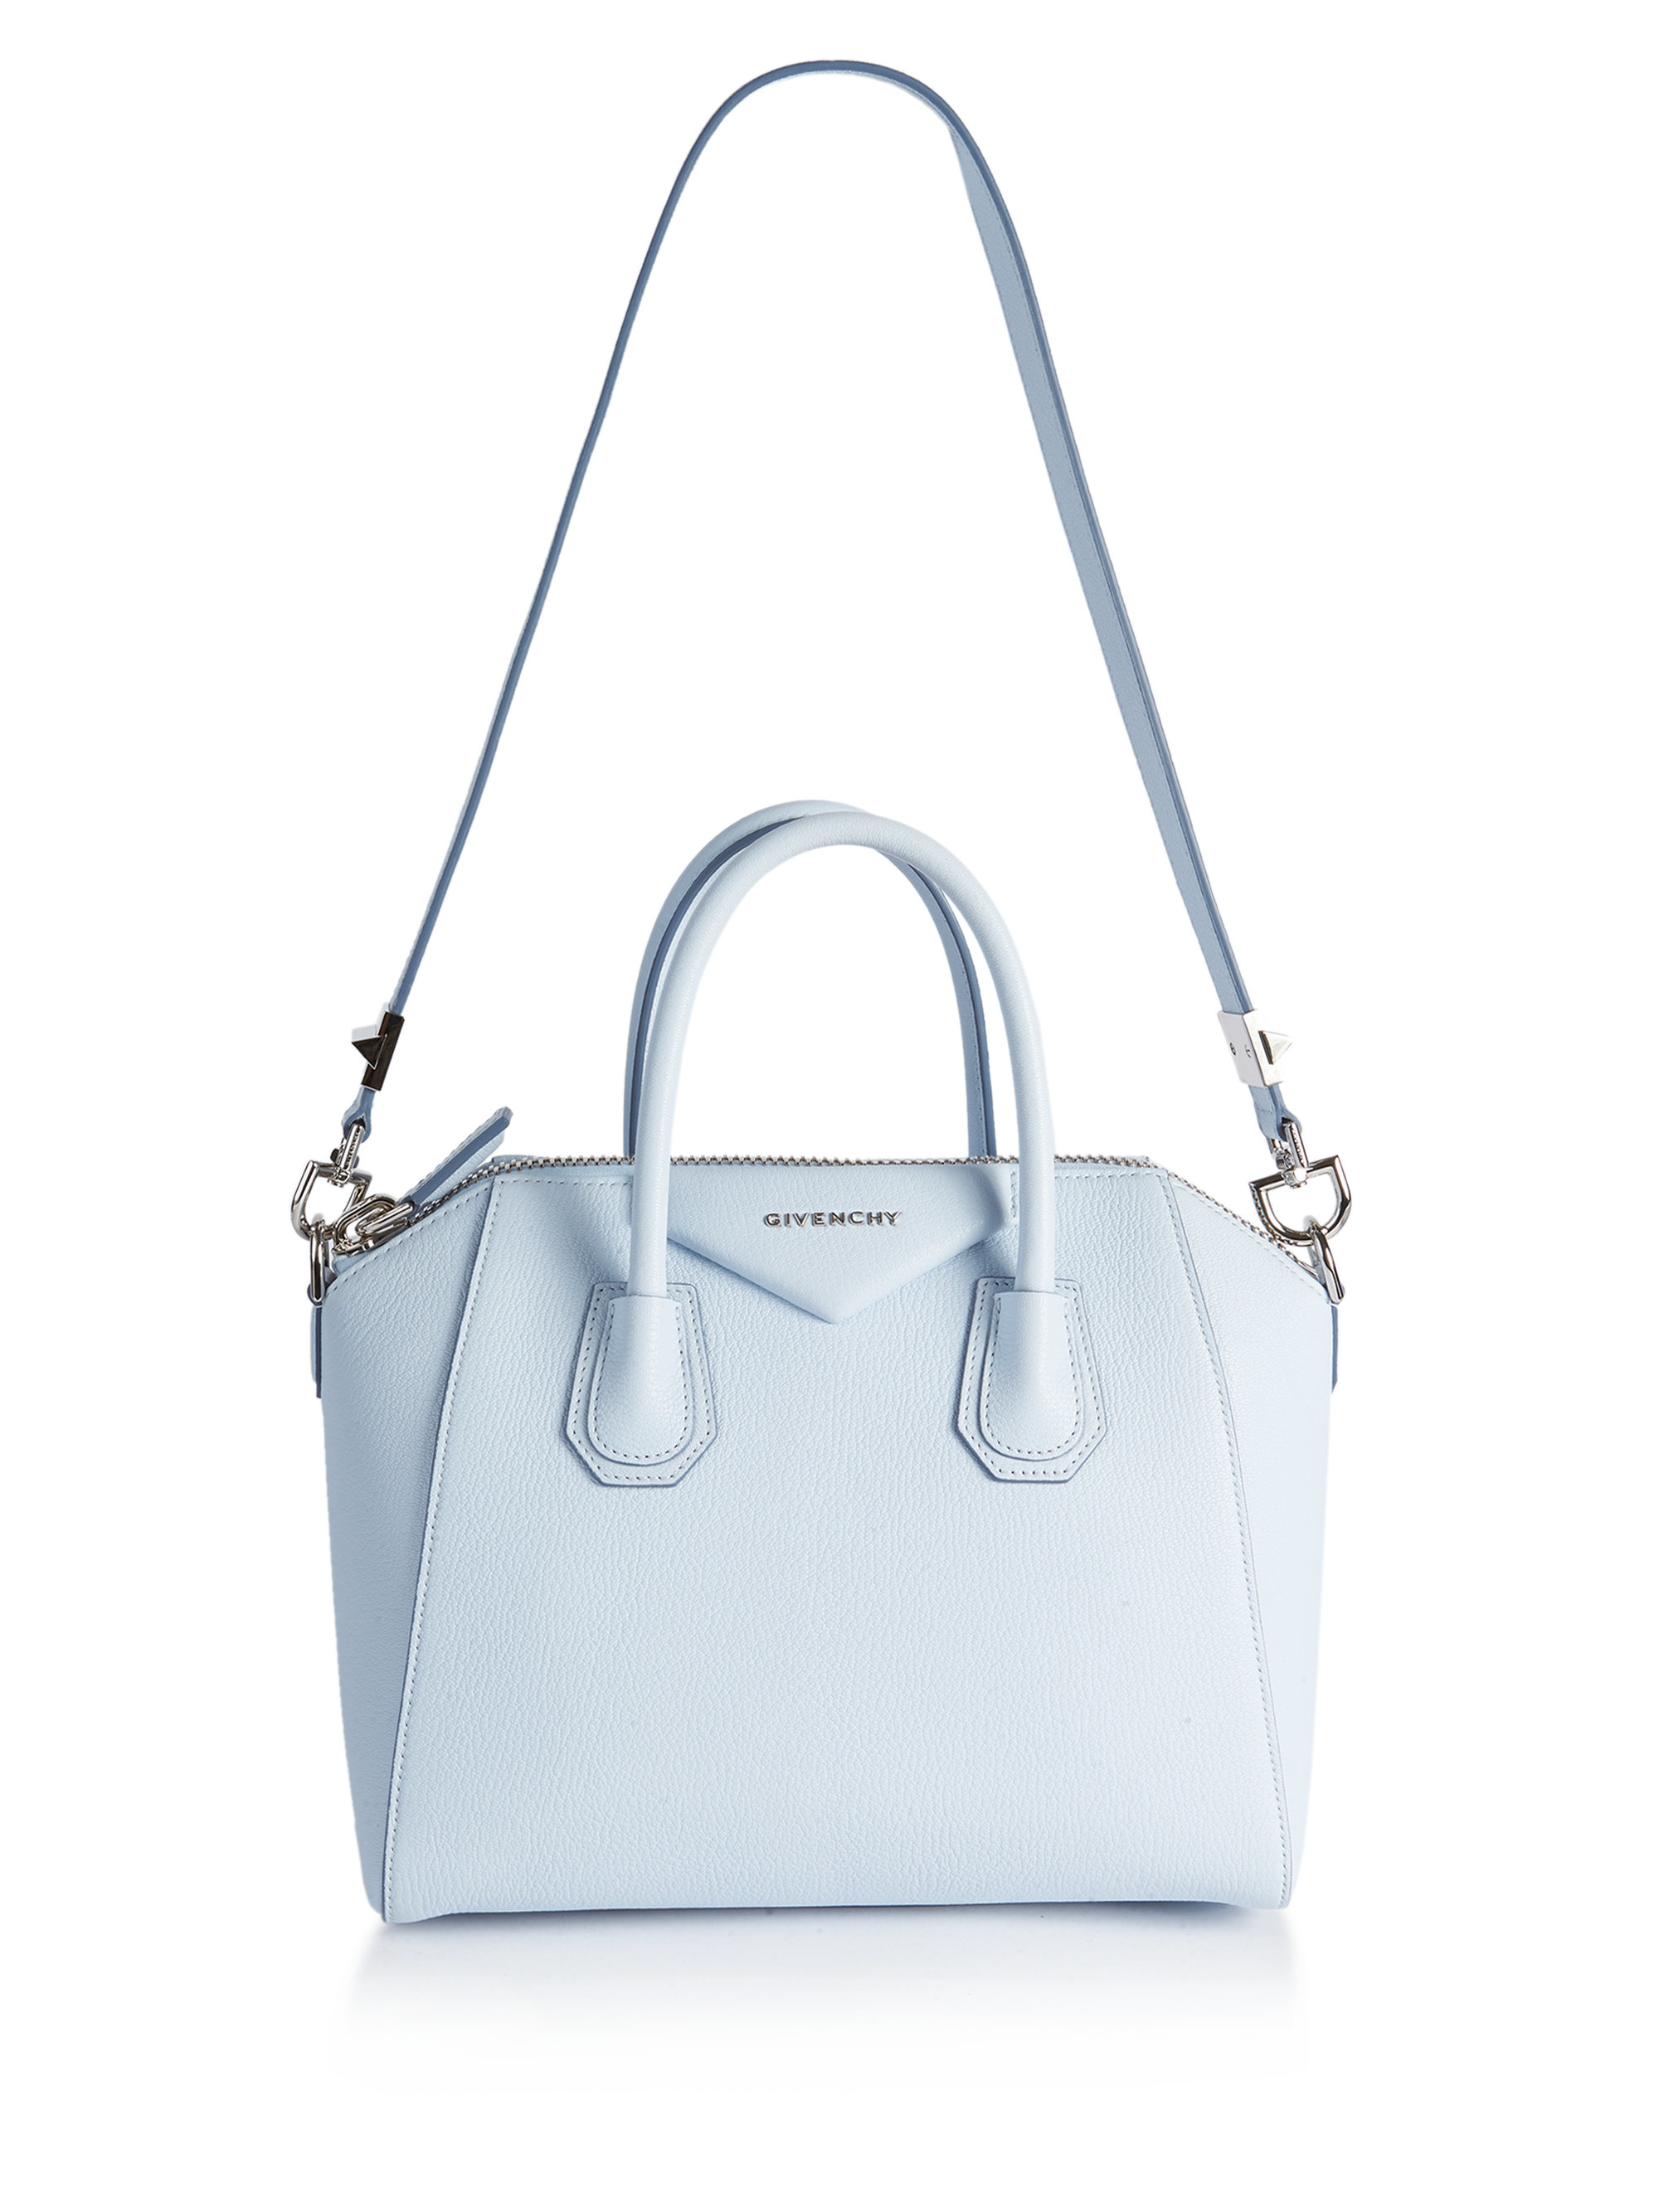 Lyst - Givenchy Antigona Small Leather Satchel in Blue c3a670d13c3d5